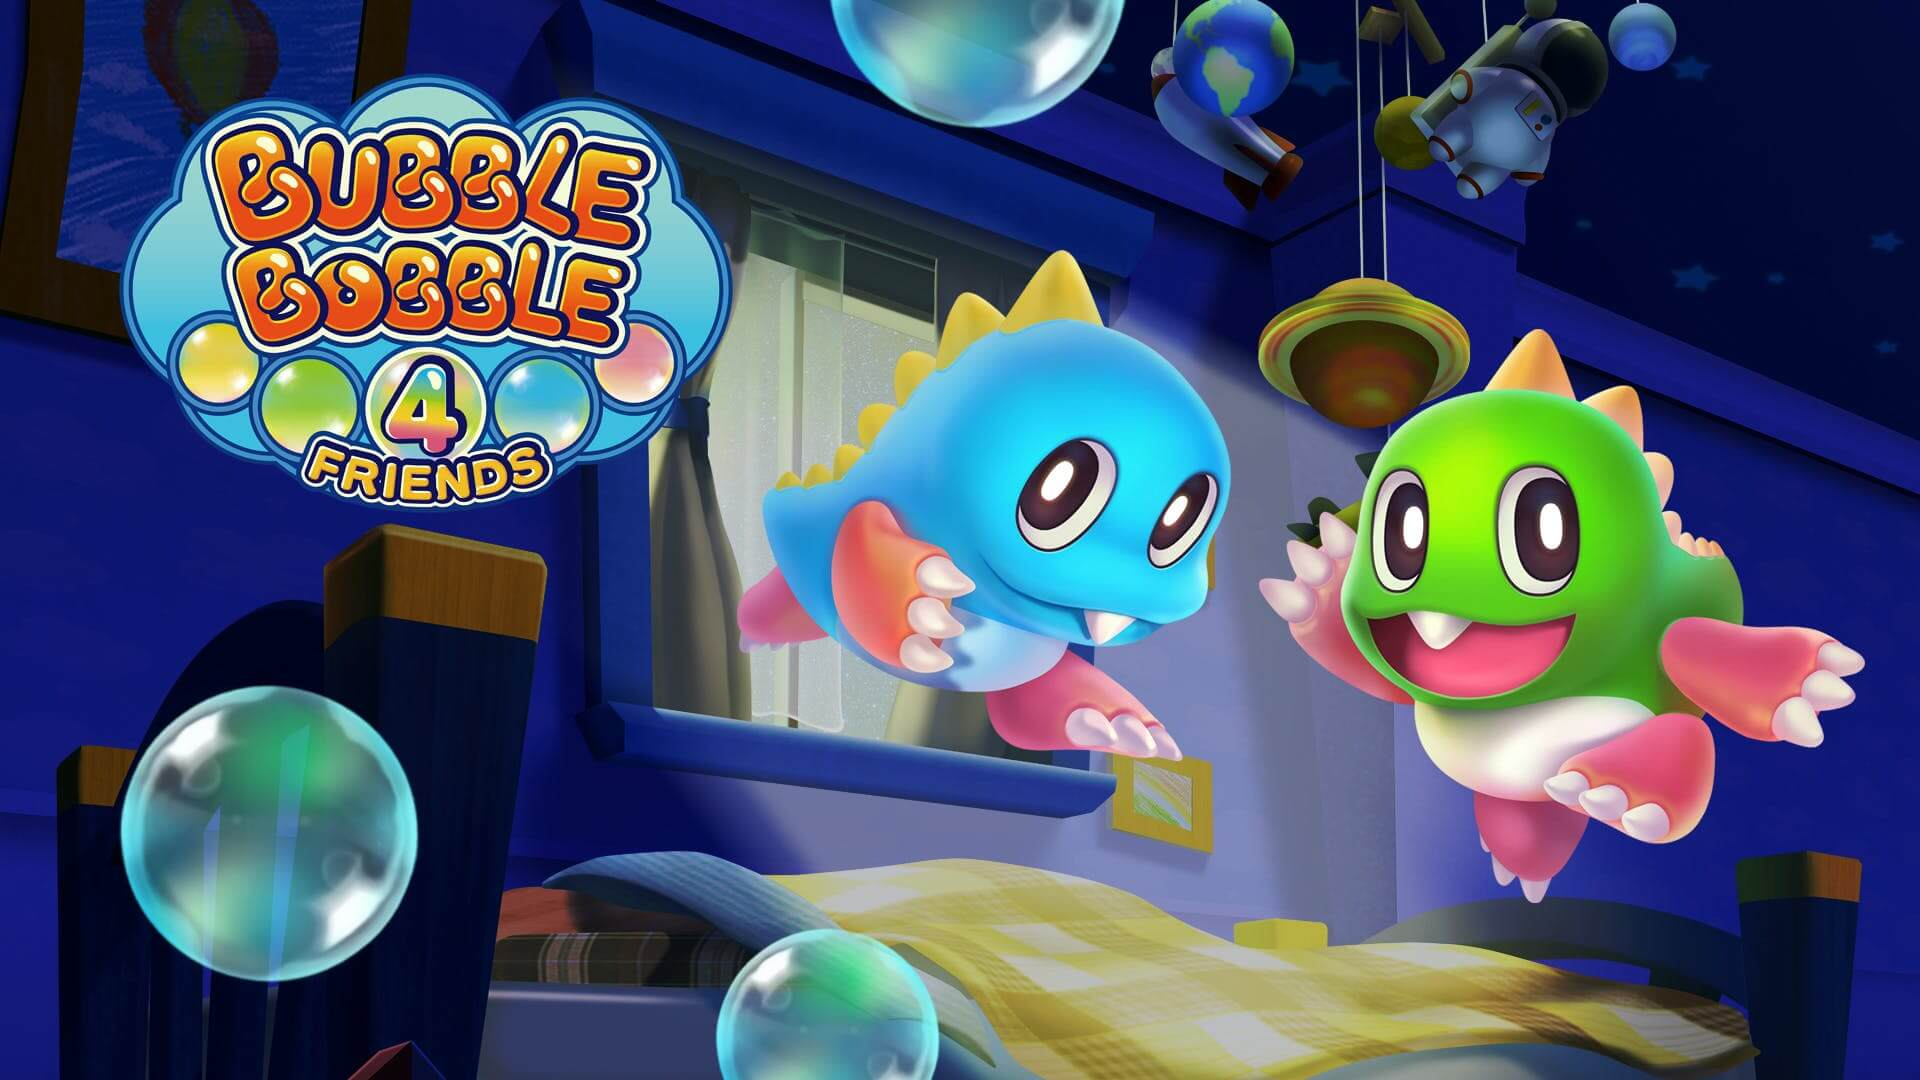 Bubble Bobble 4 to Launch on PS4 With Fan Contenst